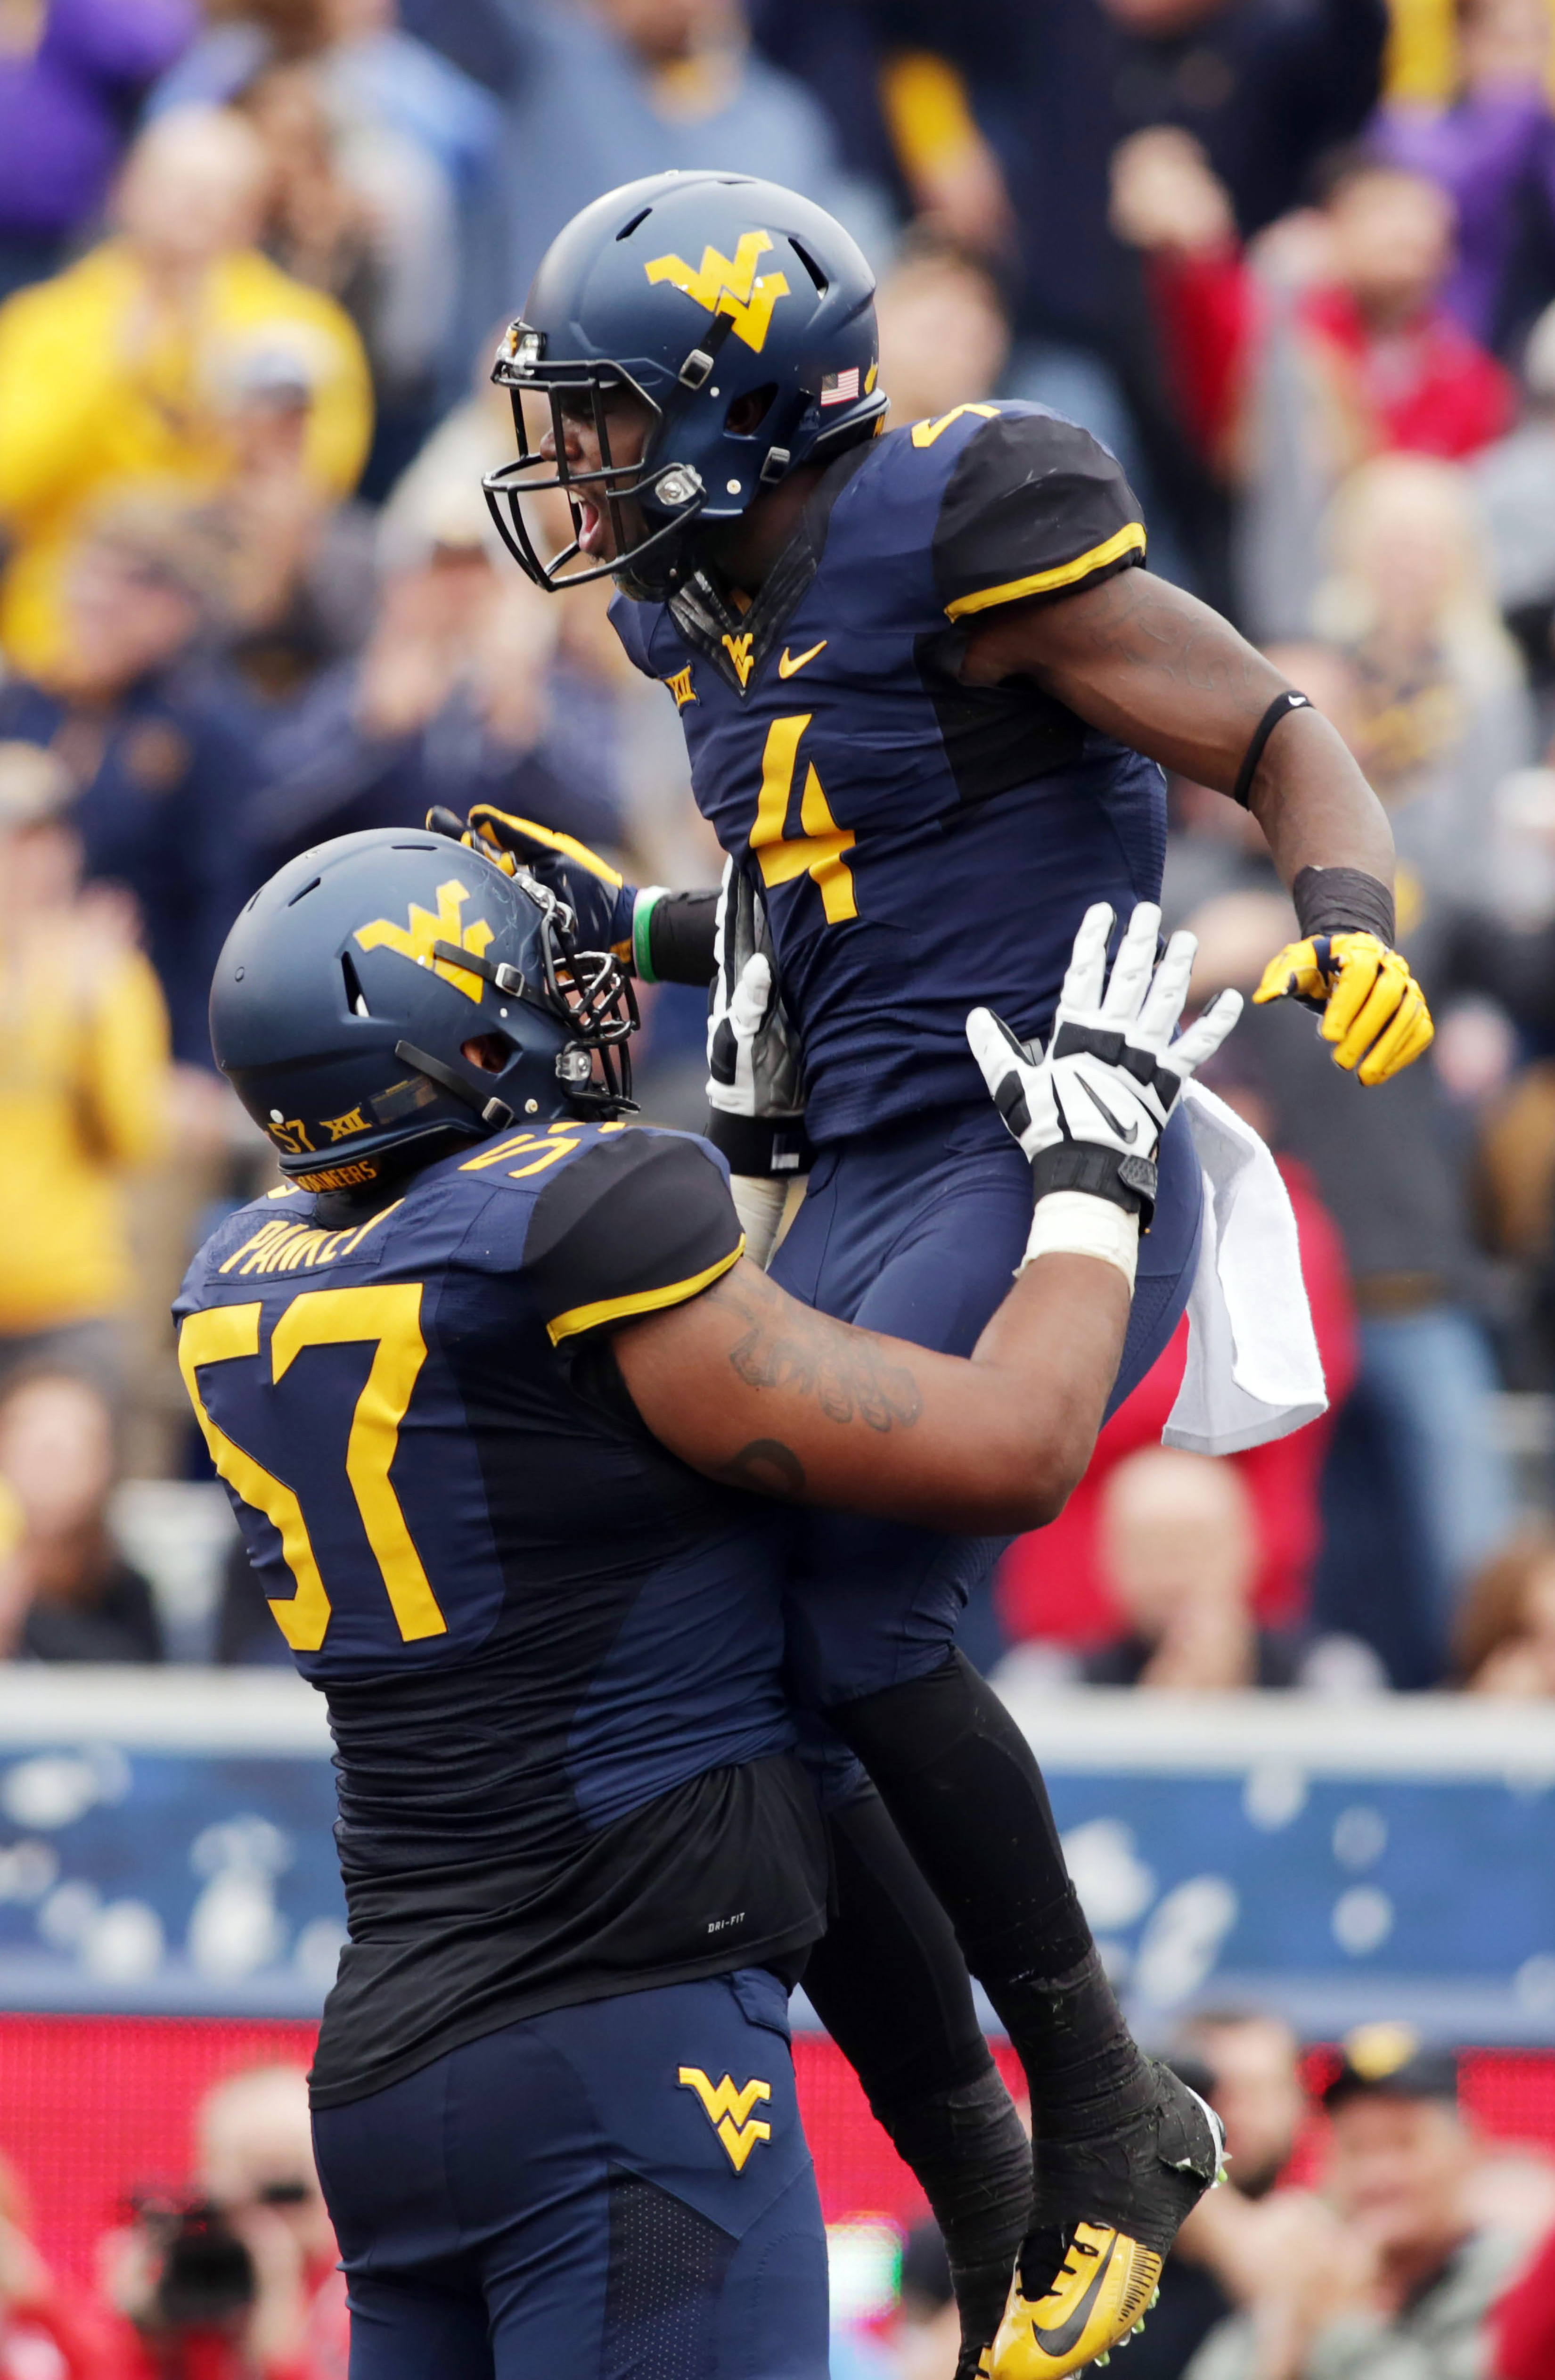 West Virginia offensive lineman Adam Pankey (57) picks up running back Wendell Smallwood (4) after he scored a touchdown during the first half of an NCAA college football game against Texas Tech, Saturday, Nov. 7, 2015, in Morgantown, W.Va. (AP Photo/Raym